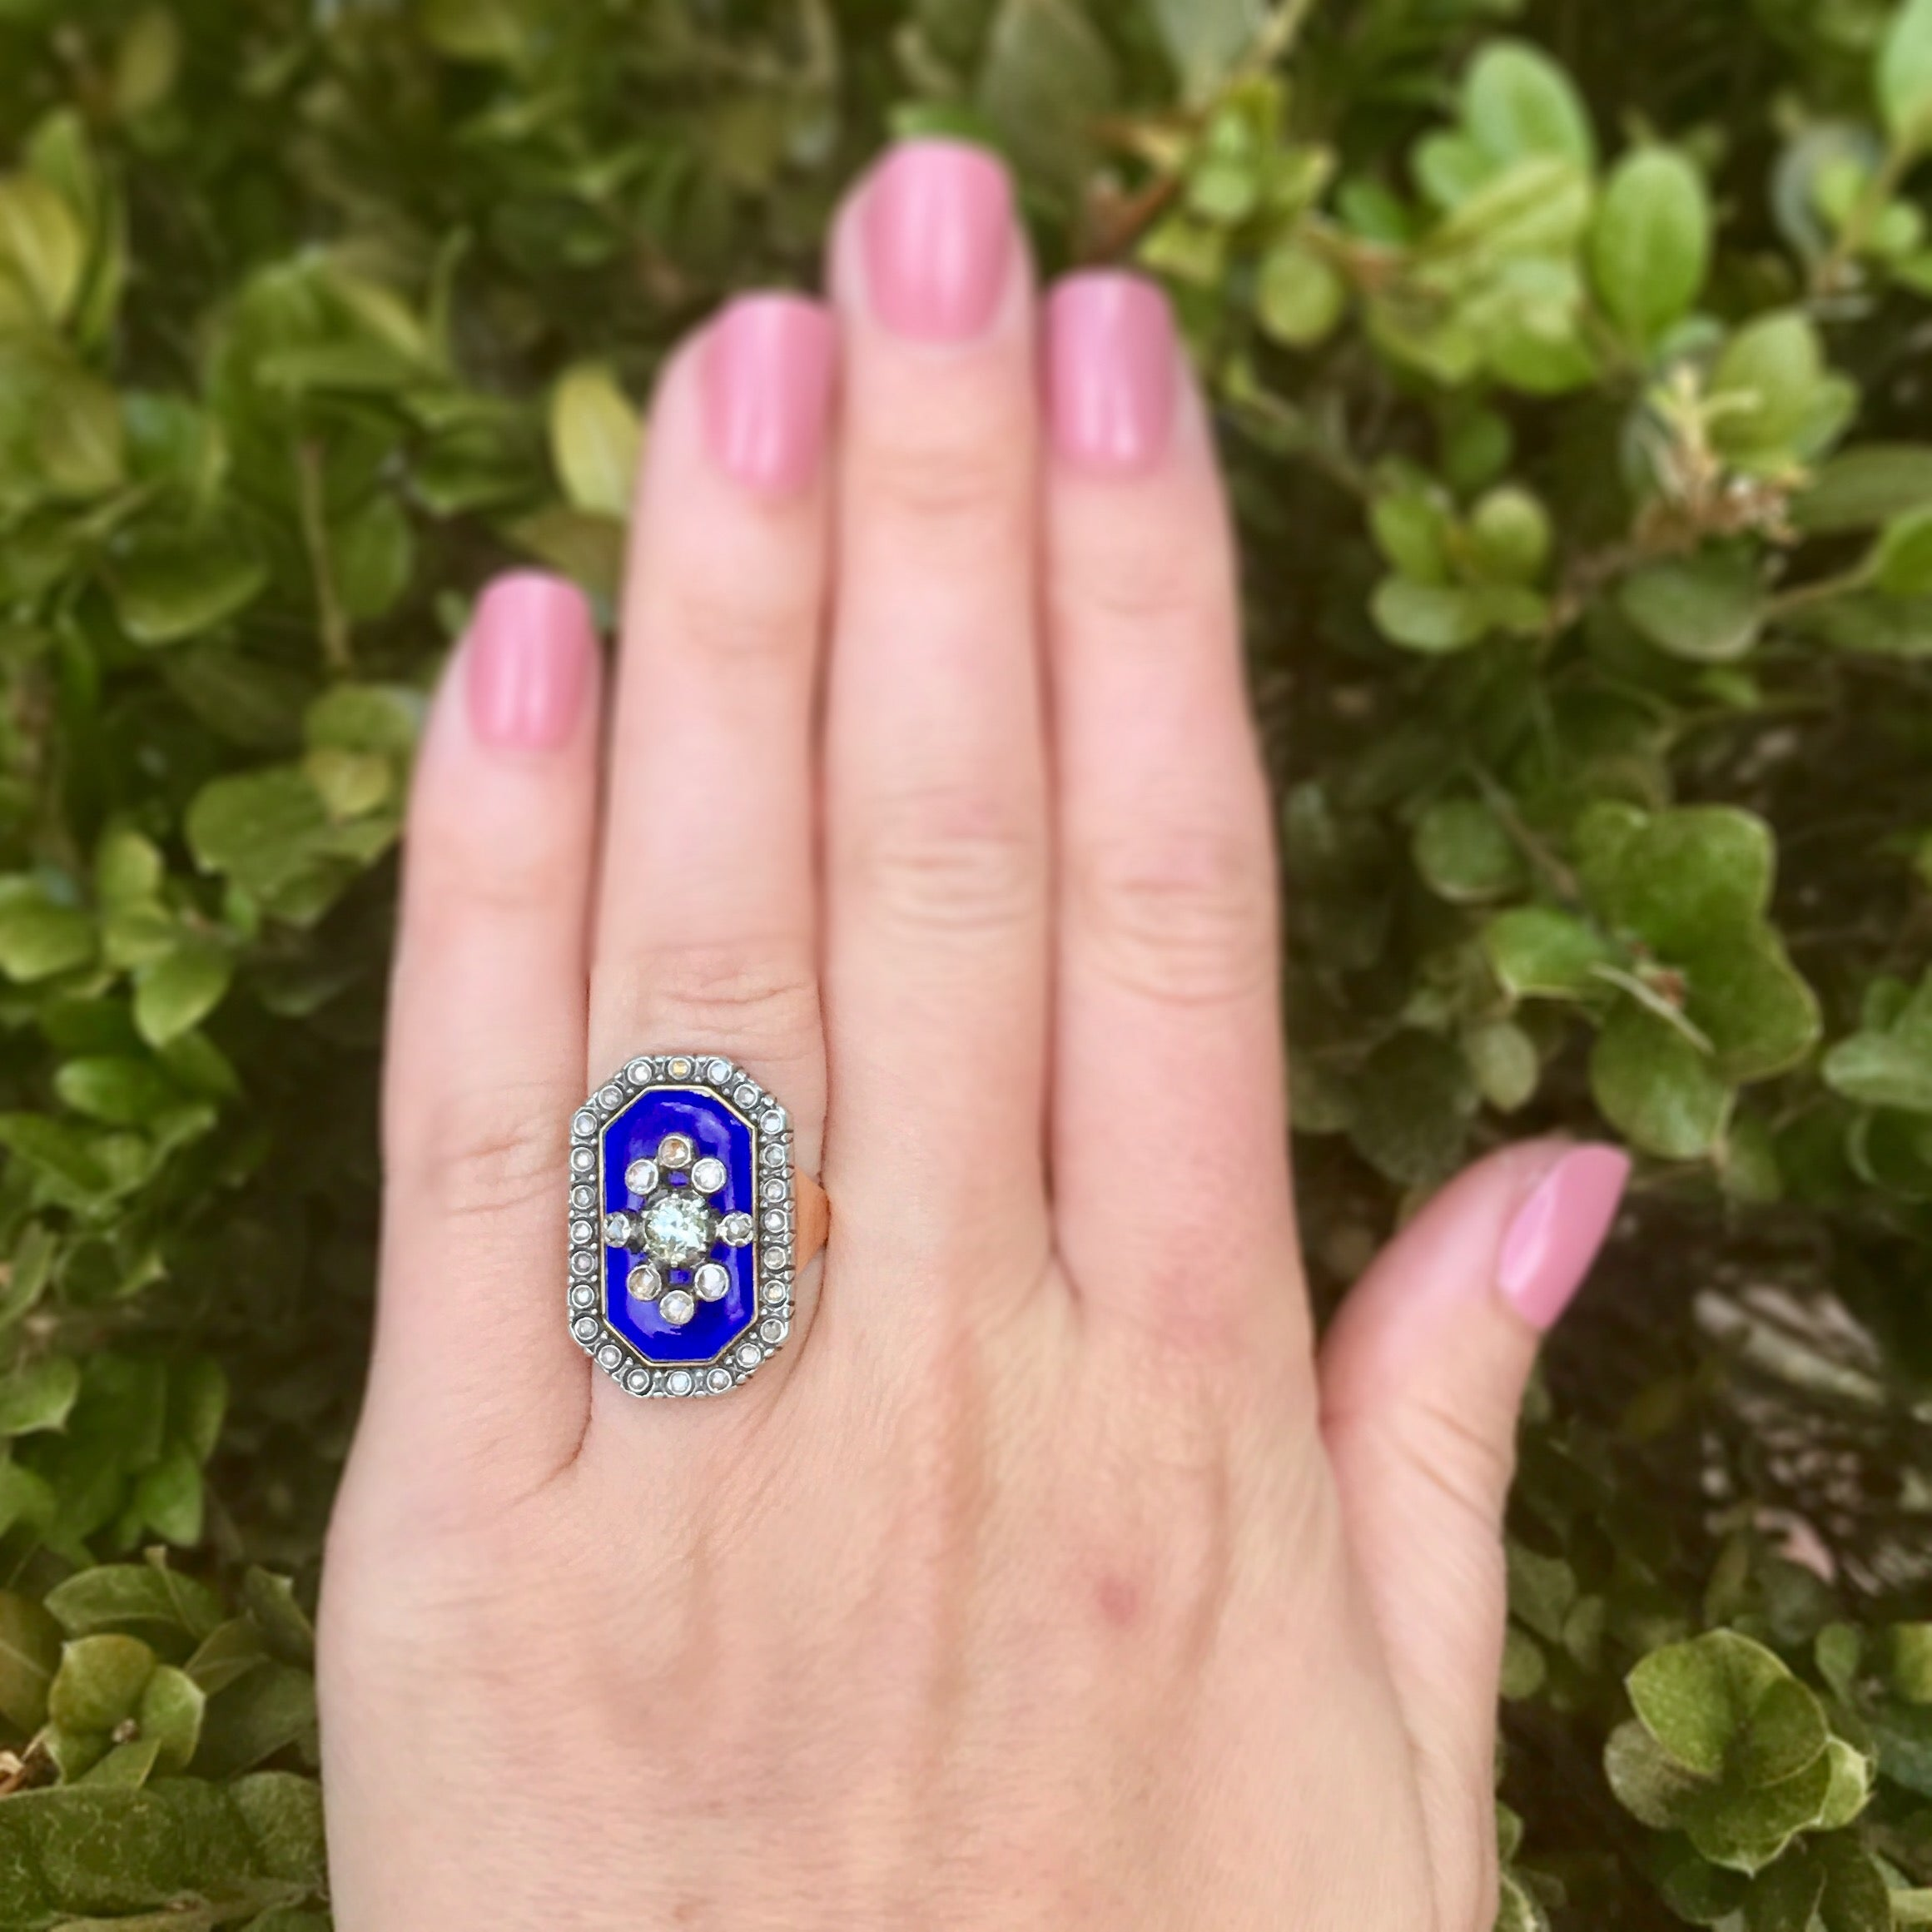 Victorian Blue Enamel Old Cut Diamond Ring For Sale at 1stdibs